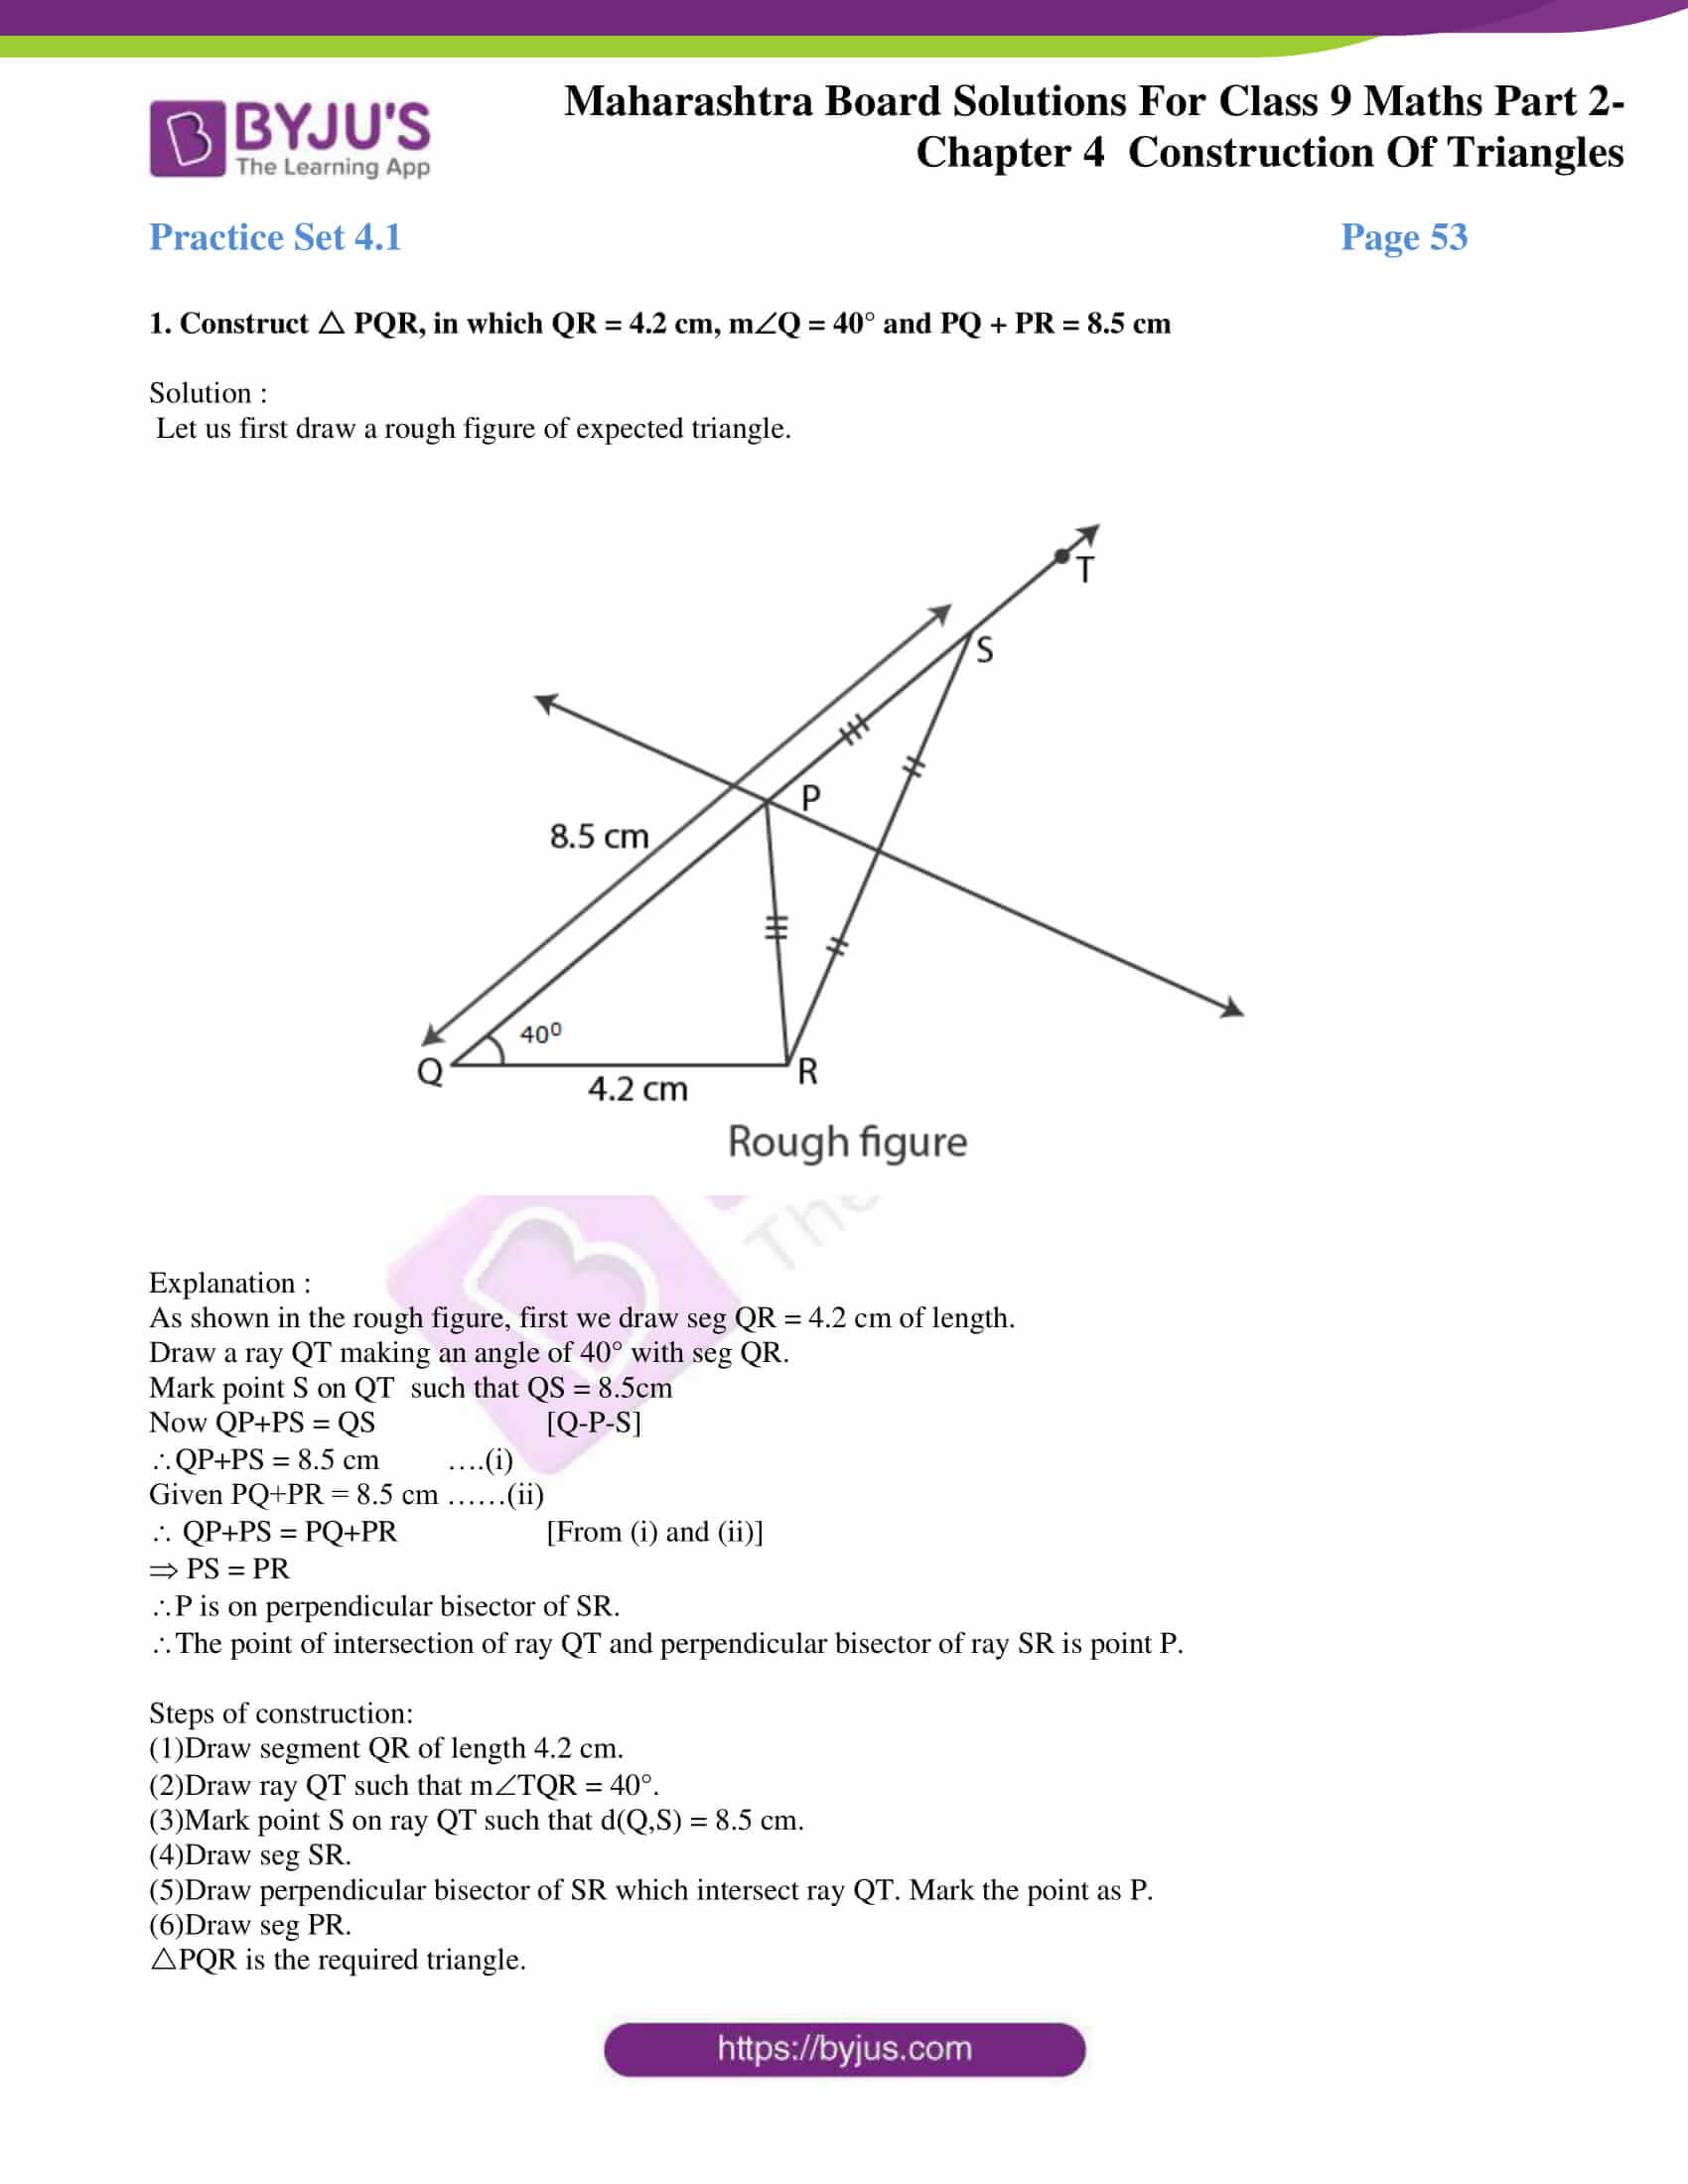 msbshse solutions for class 9 maths part 2 chapter 4 01